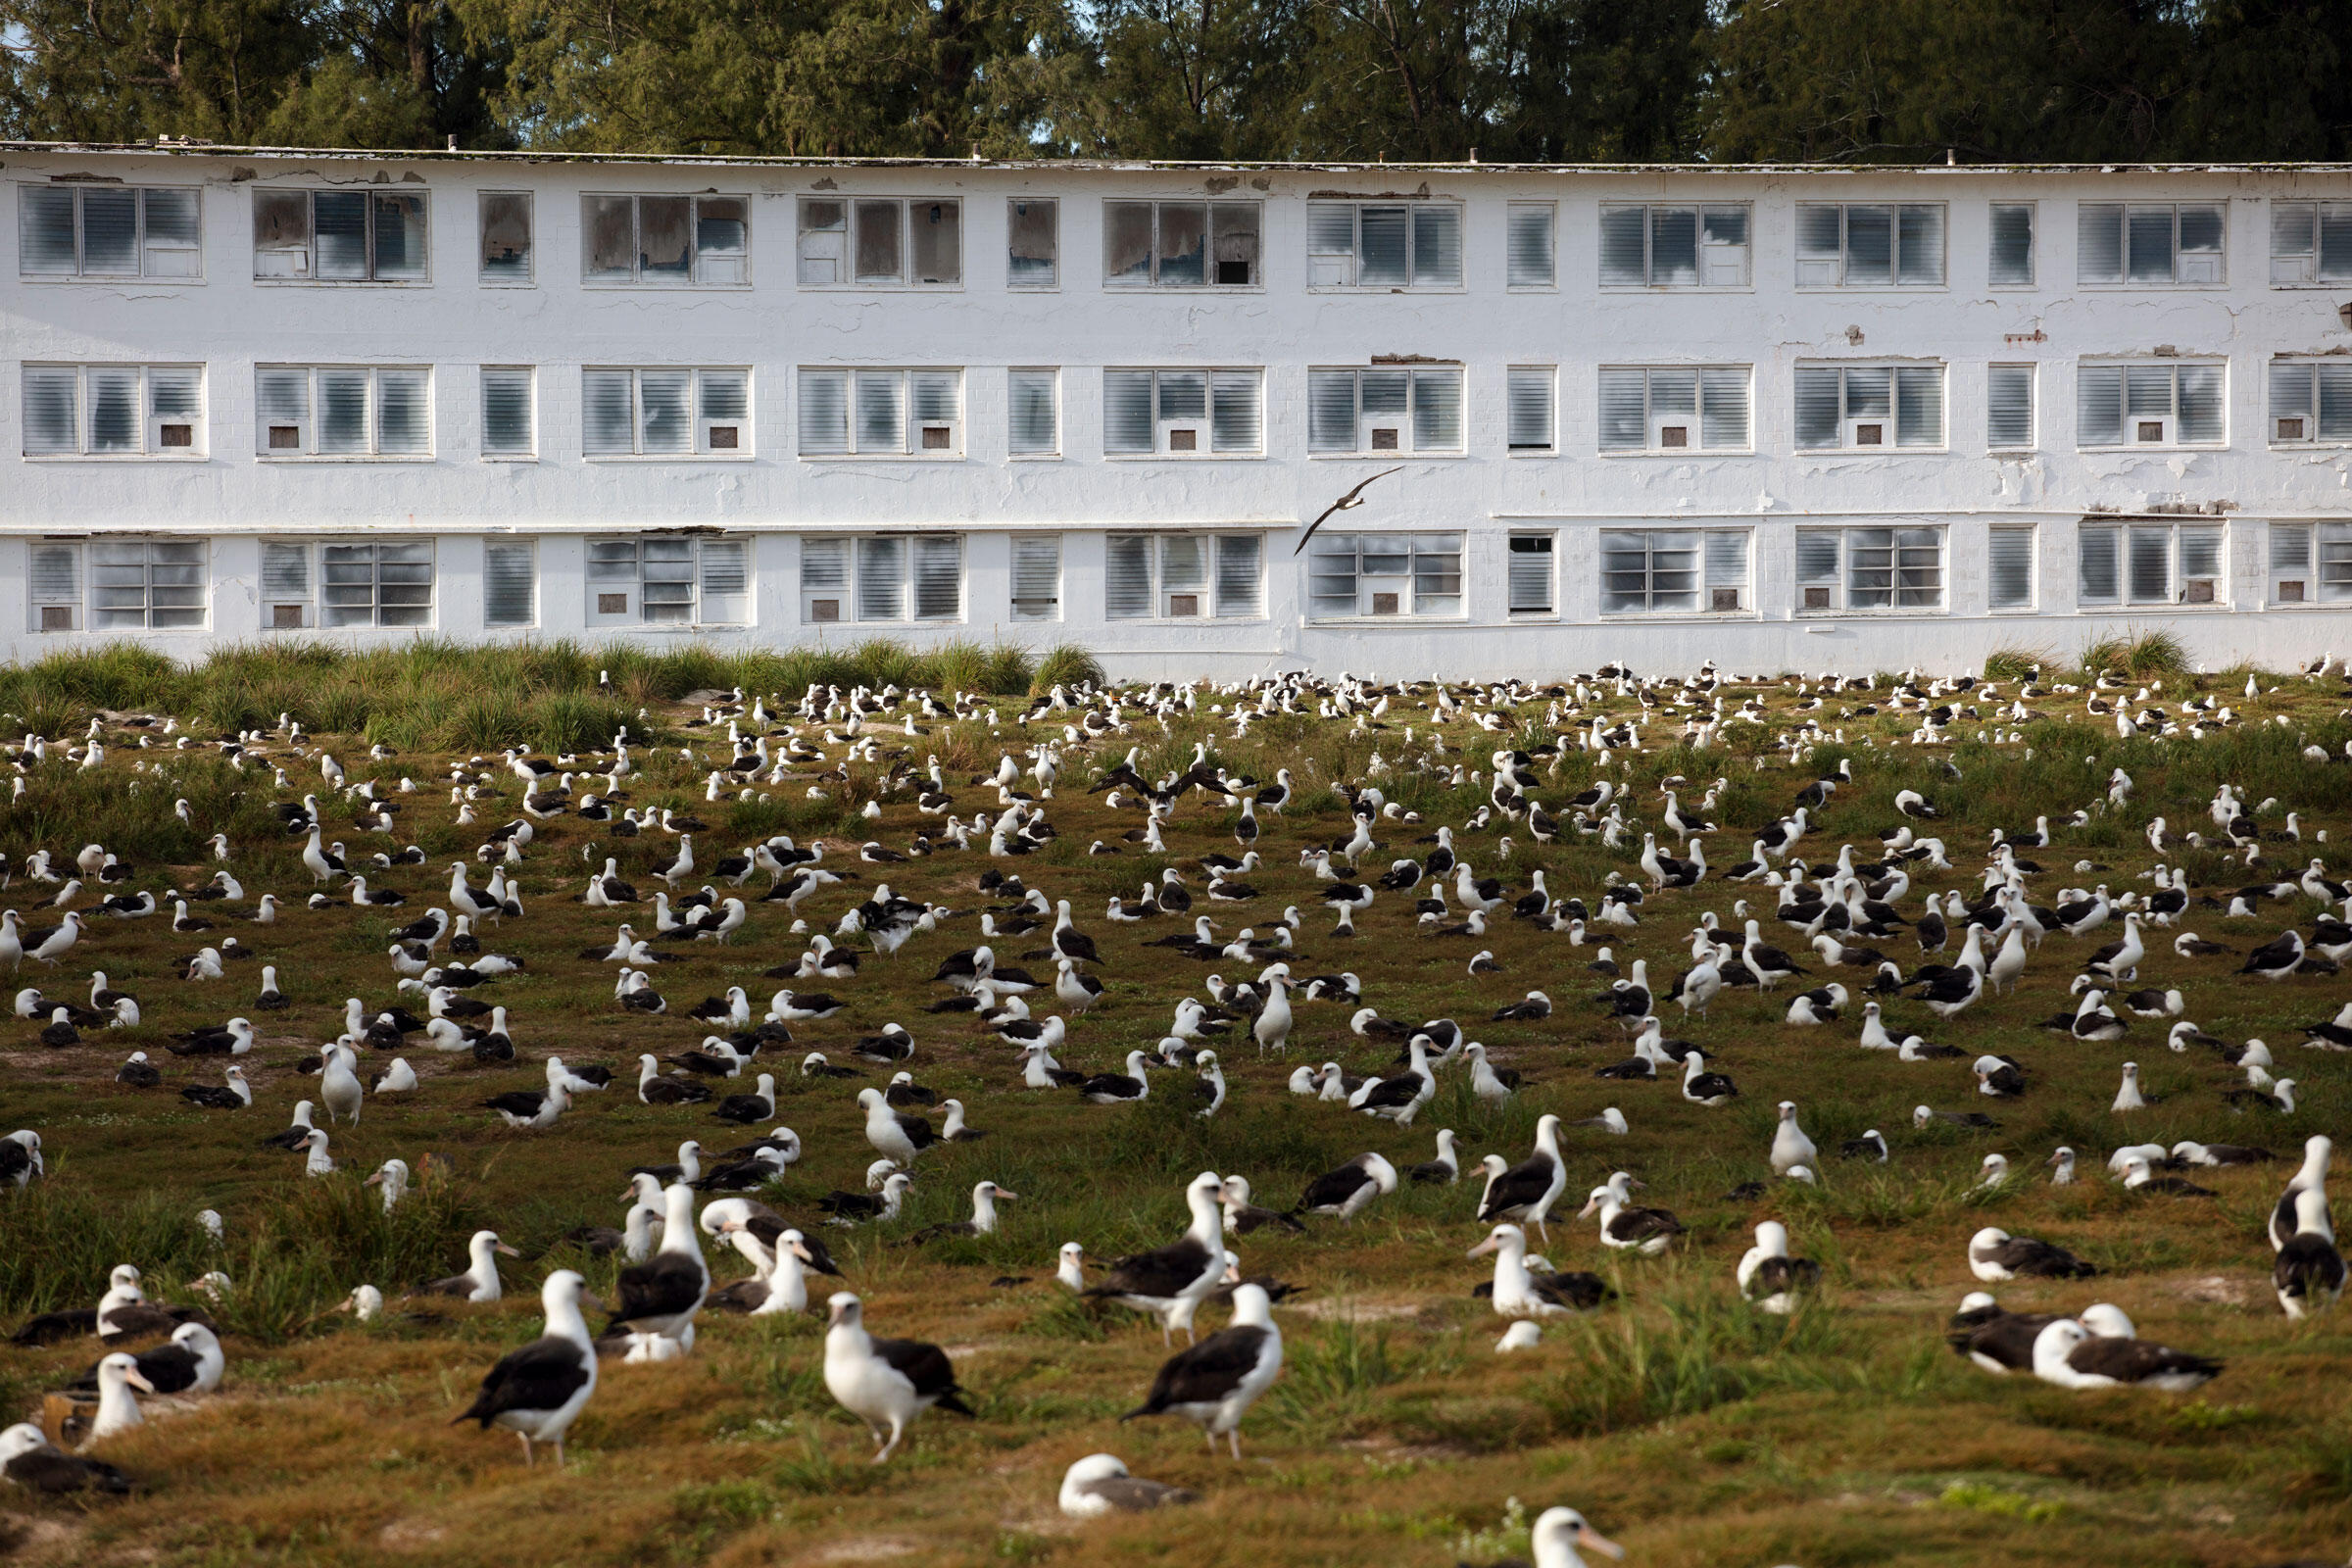 Breeding pairs of Laysan and Black-footed Albatrosses dominate the green space in front of an old Navy barracks on Midway. Jon Brack/USFWS